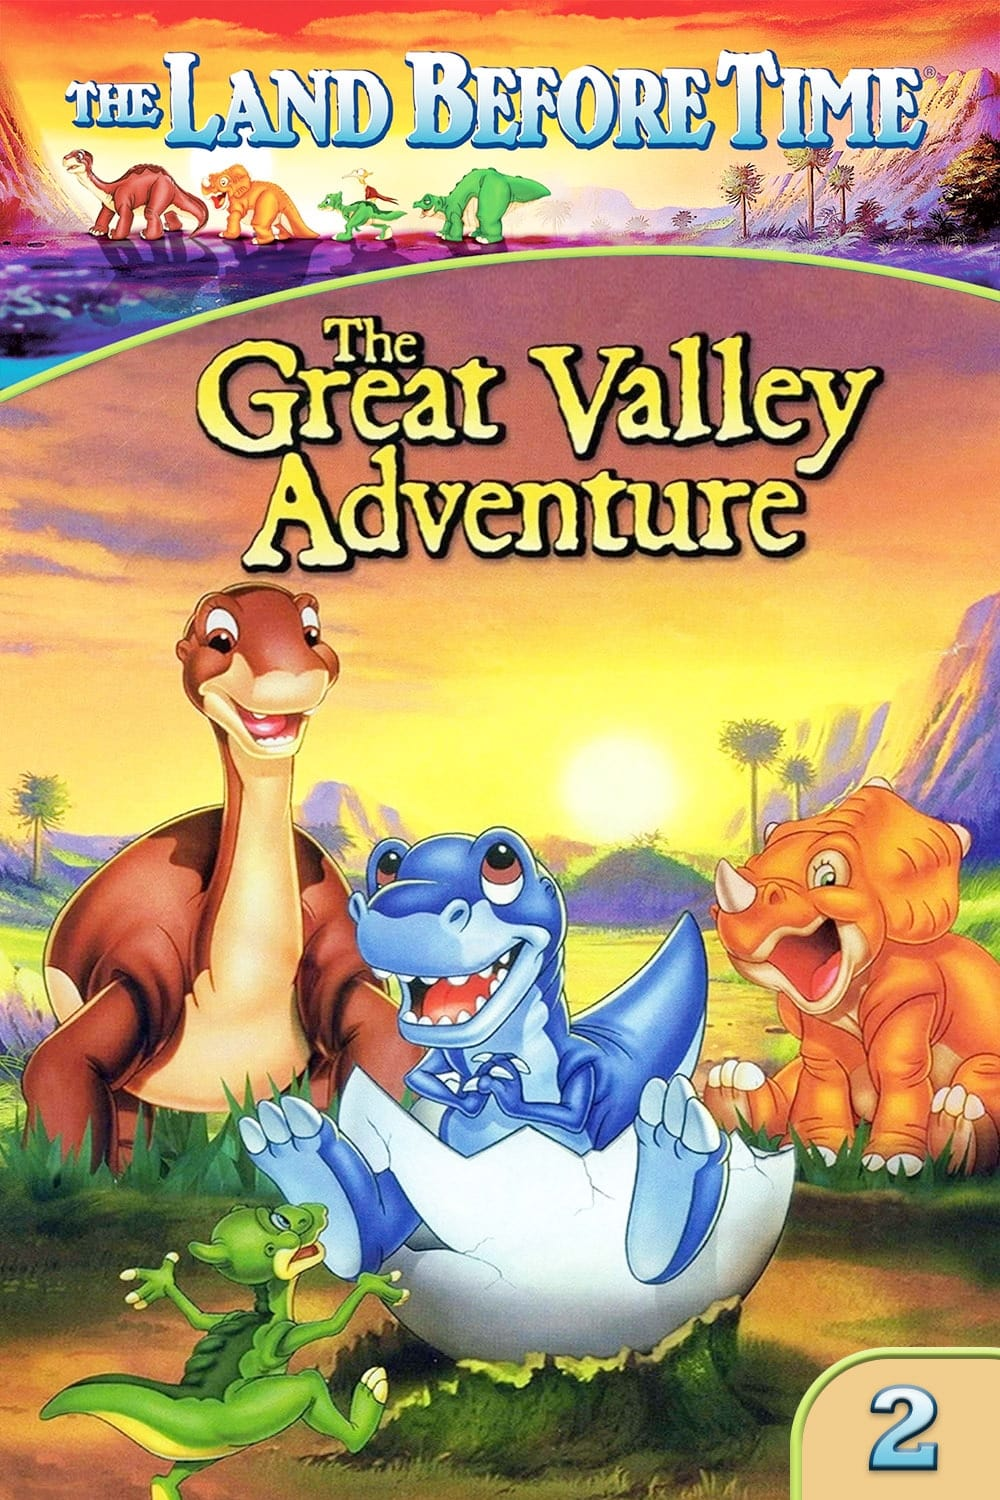 Image The Land Before Time: The Great Valley Adventure